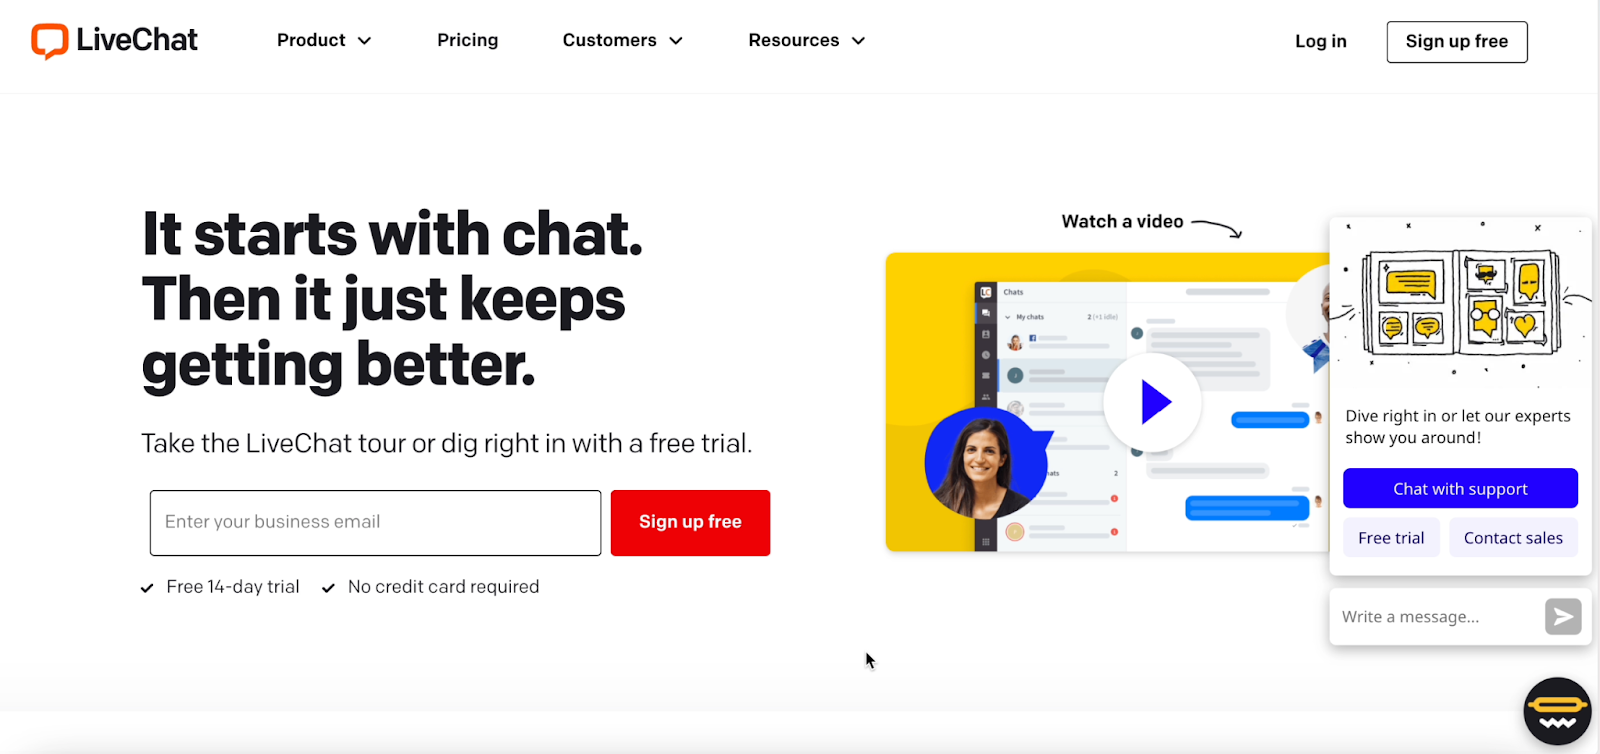 Take the opportunity to get feedback from website & landing page visitors via chat.